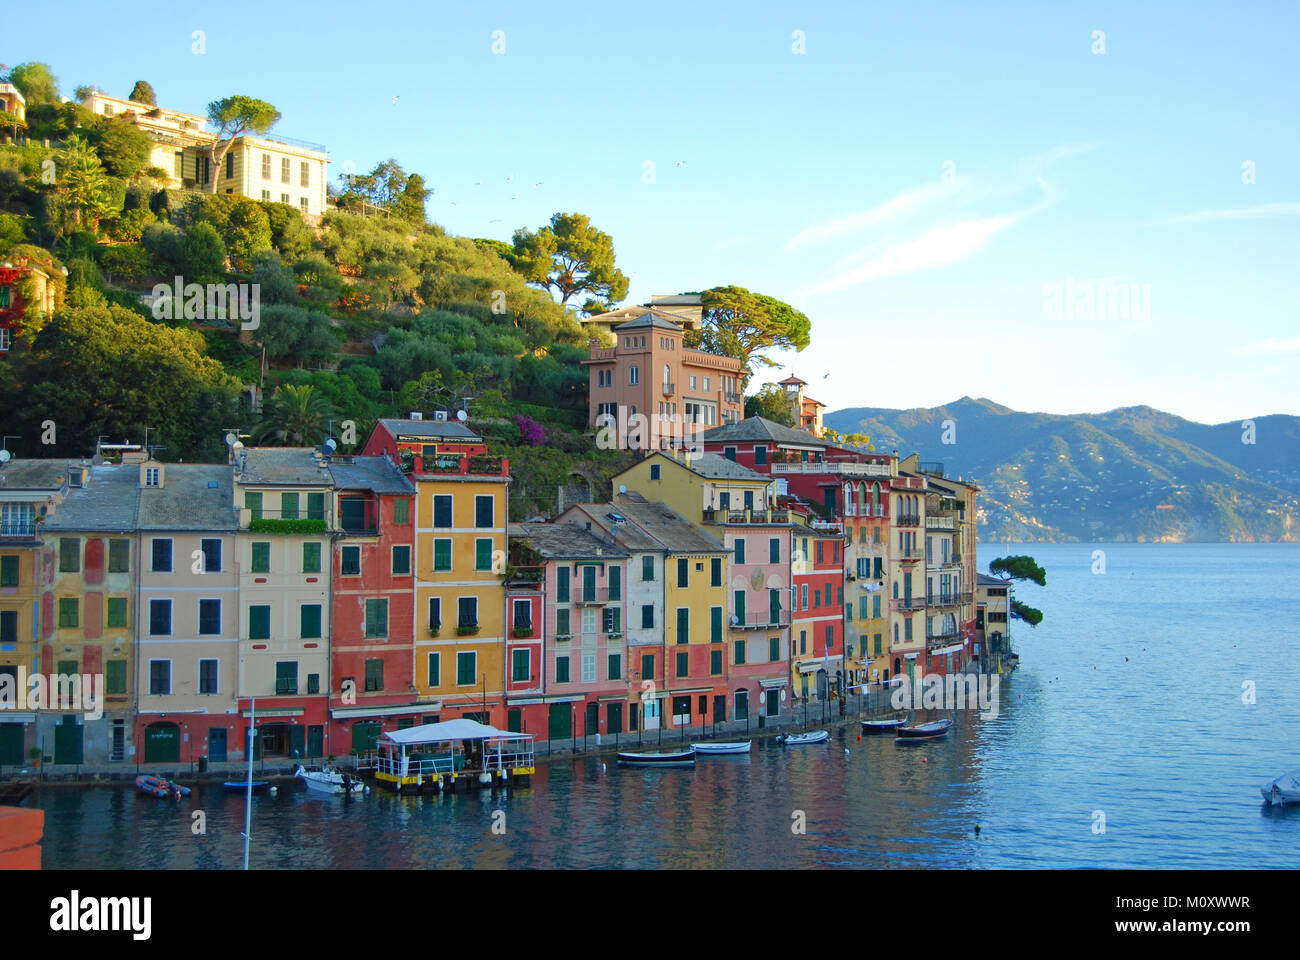 Portofino Liguria Italy Stock Photo